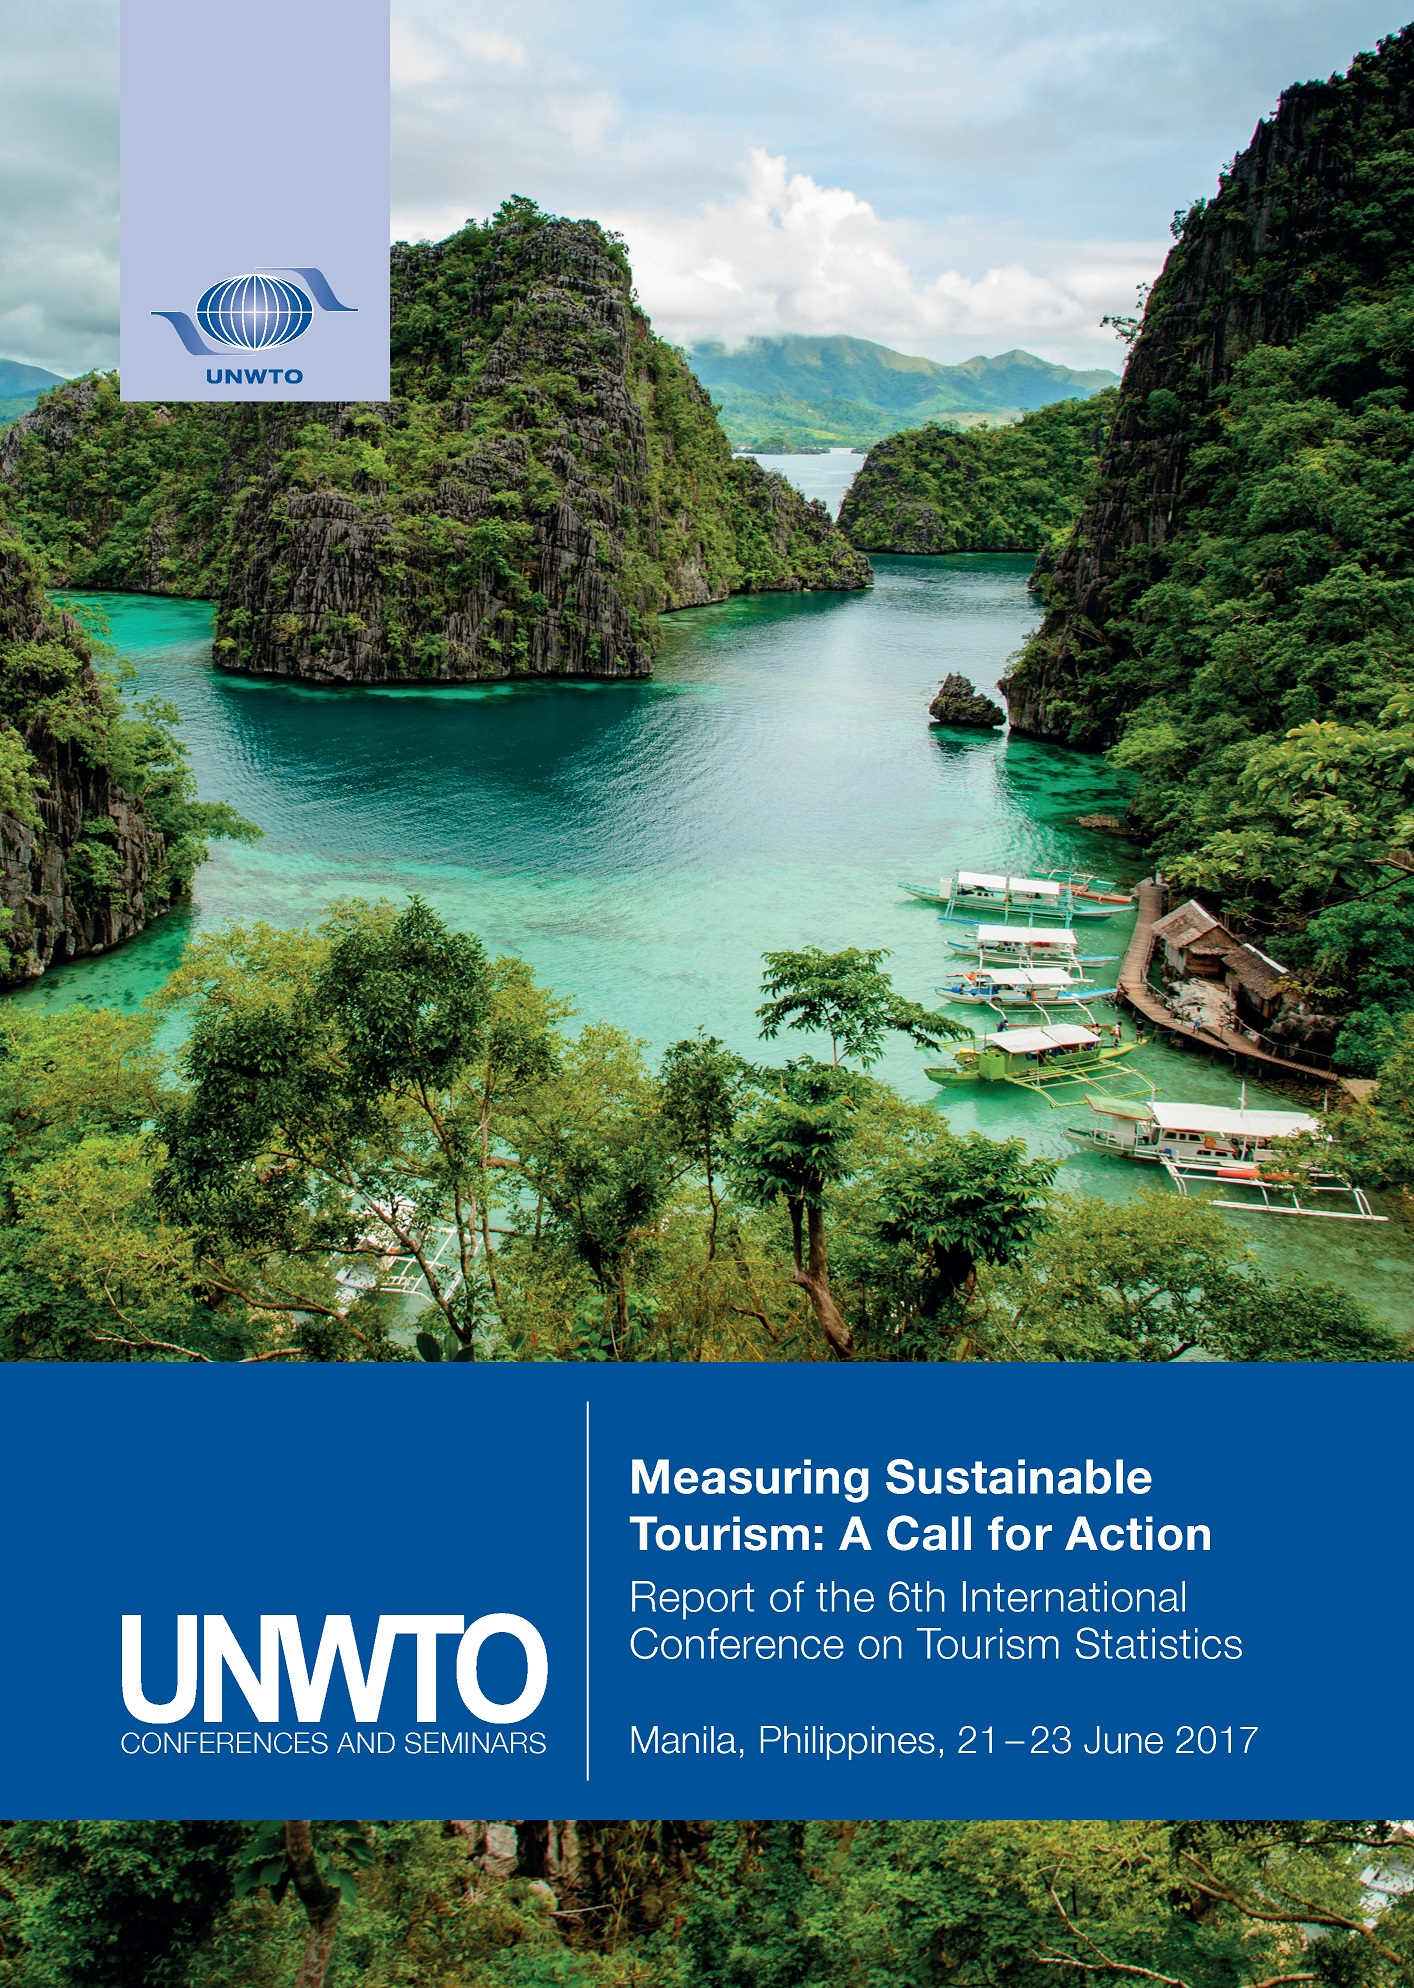 Measuring Sustainable Tourism: A Call for Action – Report of the 6th International Conference on Tourism Statistics, Manila, Philippines, 21 – 23 June 2017